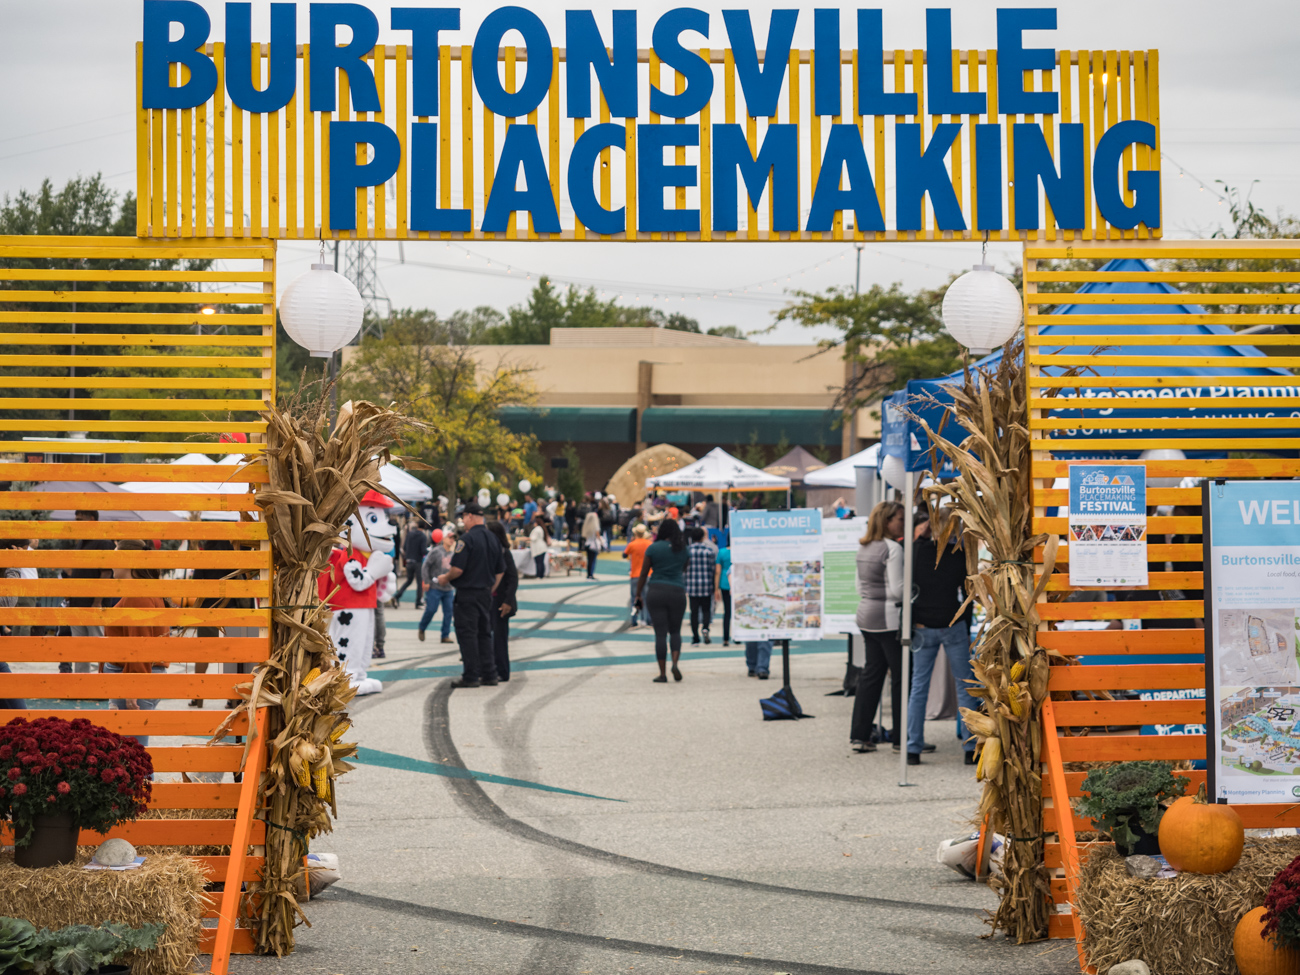 Burtonsville Placemaking Festival entrance